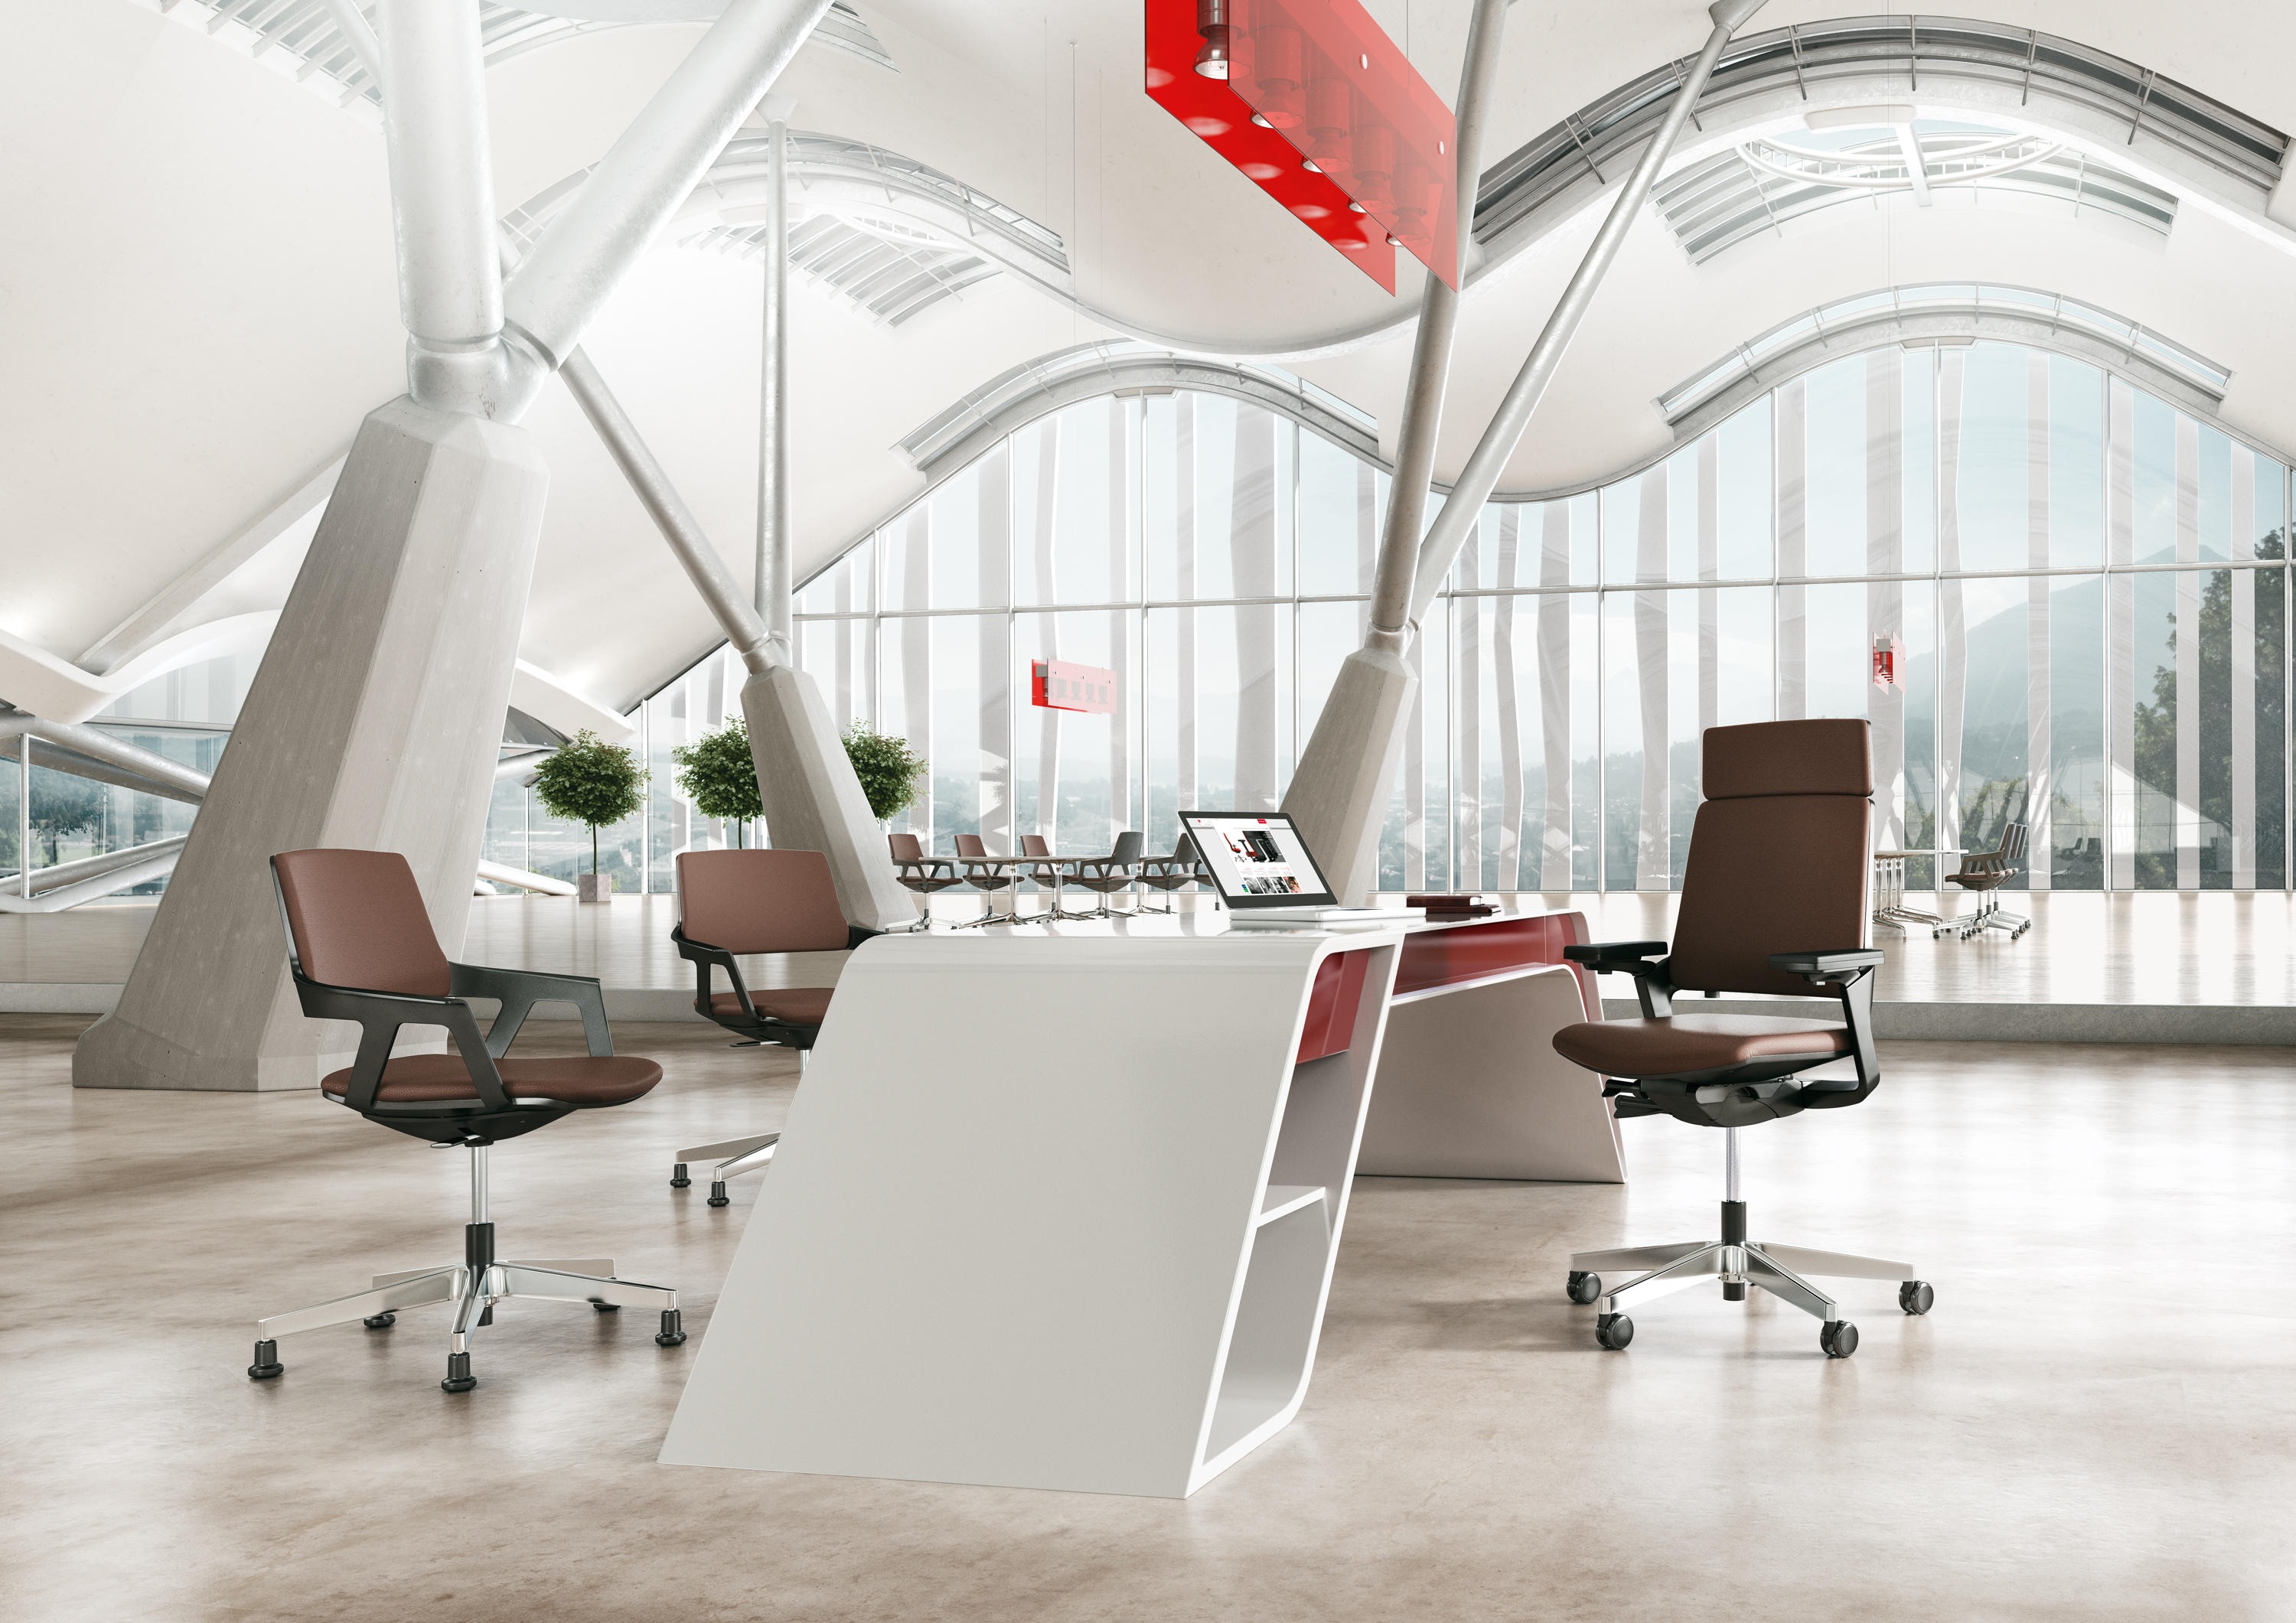 MOVYIS3 13M6 - Task chairs from Interstuhl Büromöbel GmbH & Co. KG ...